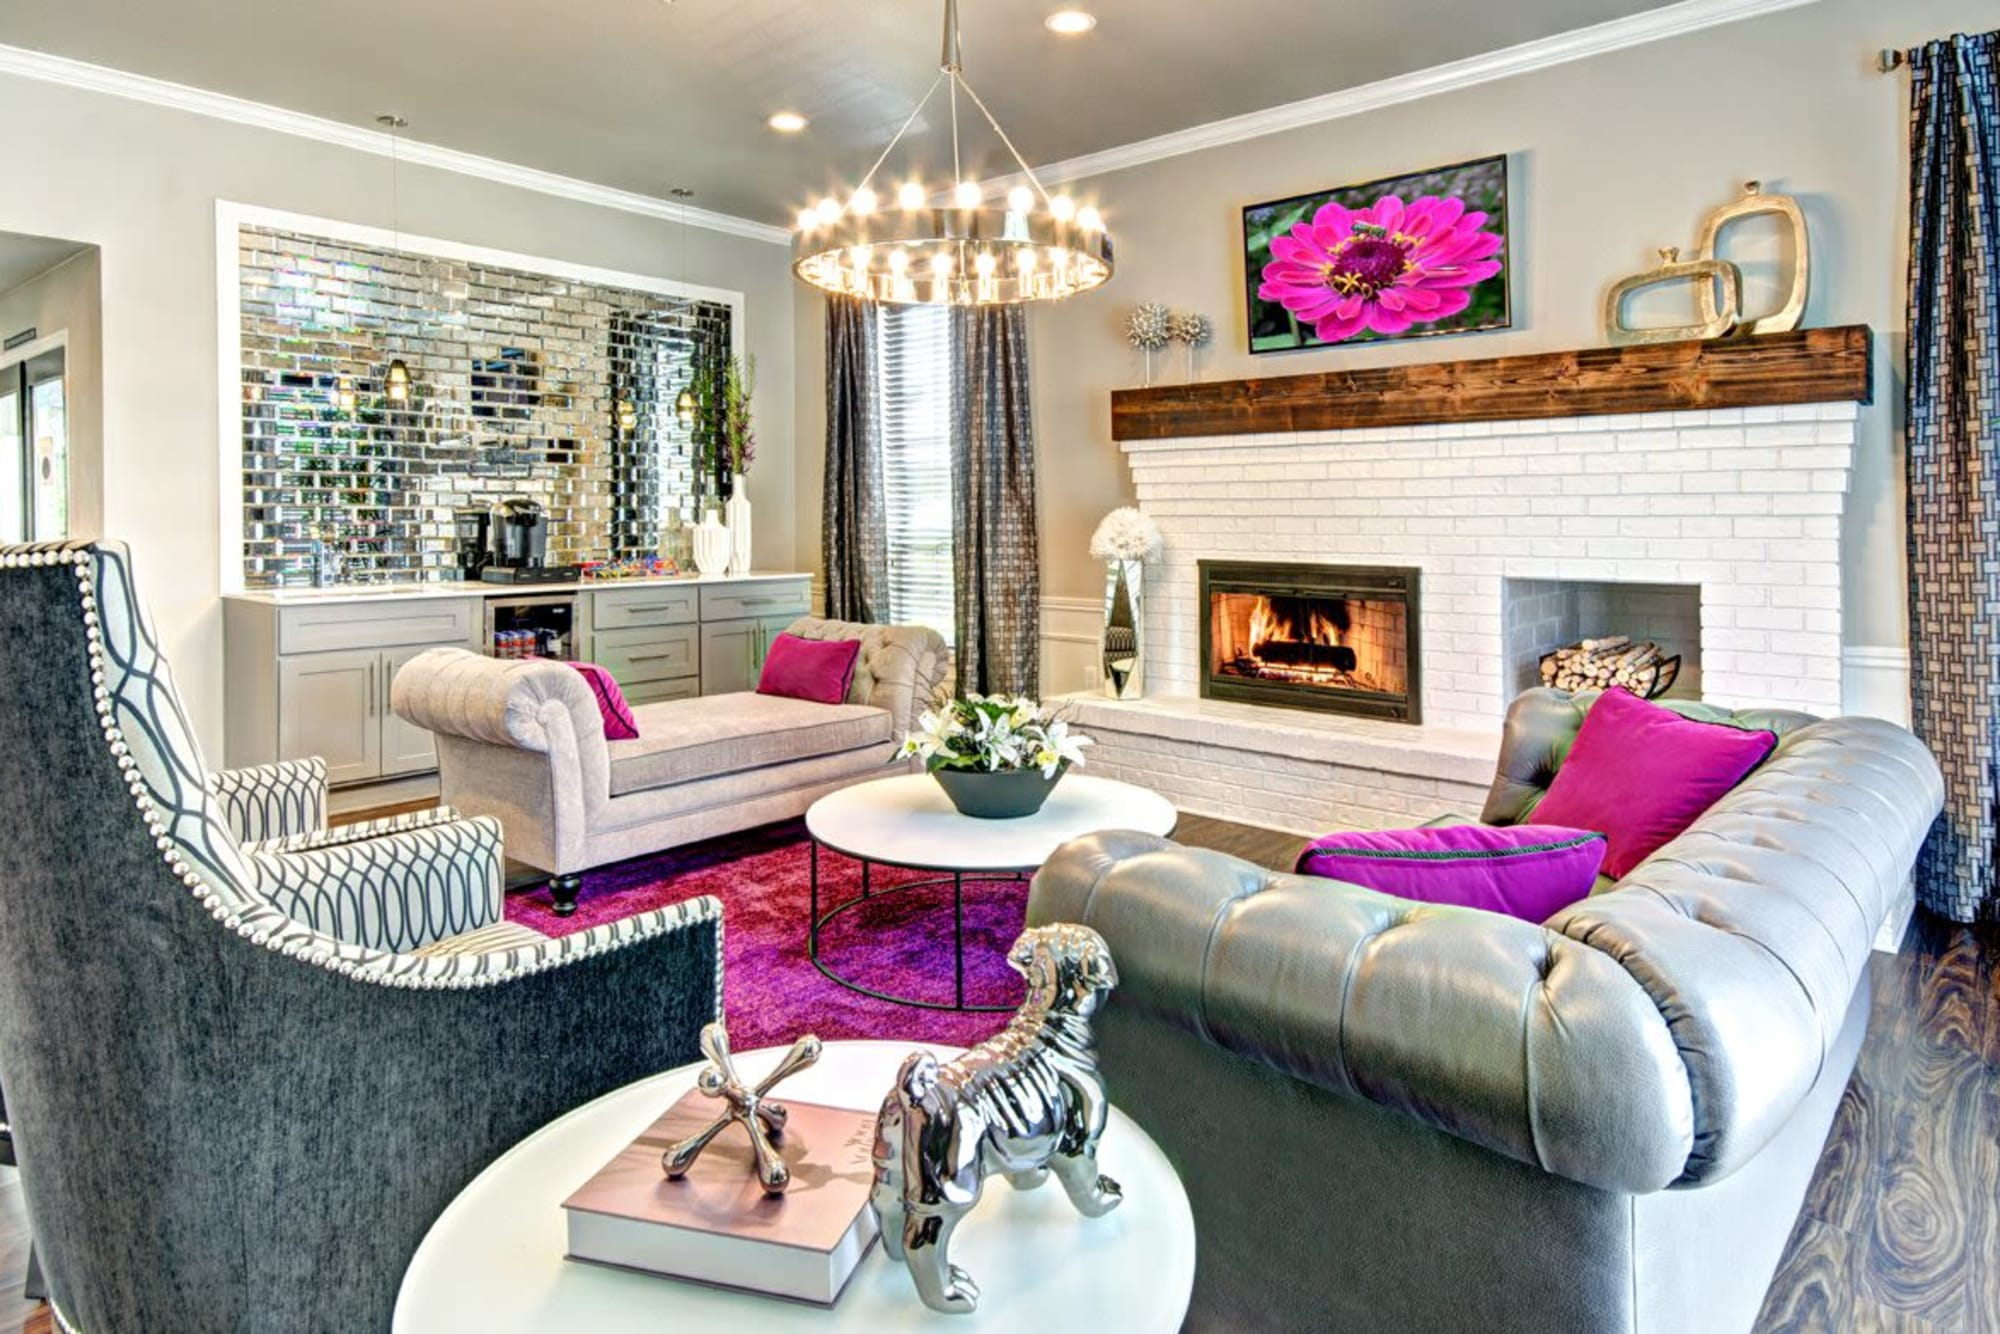 Fuchsia décor in the stylish clubhouse at Wellington Apartment Homes in Silverdale, Washington